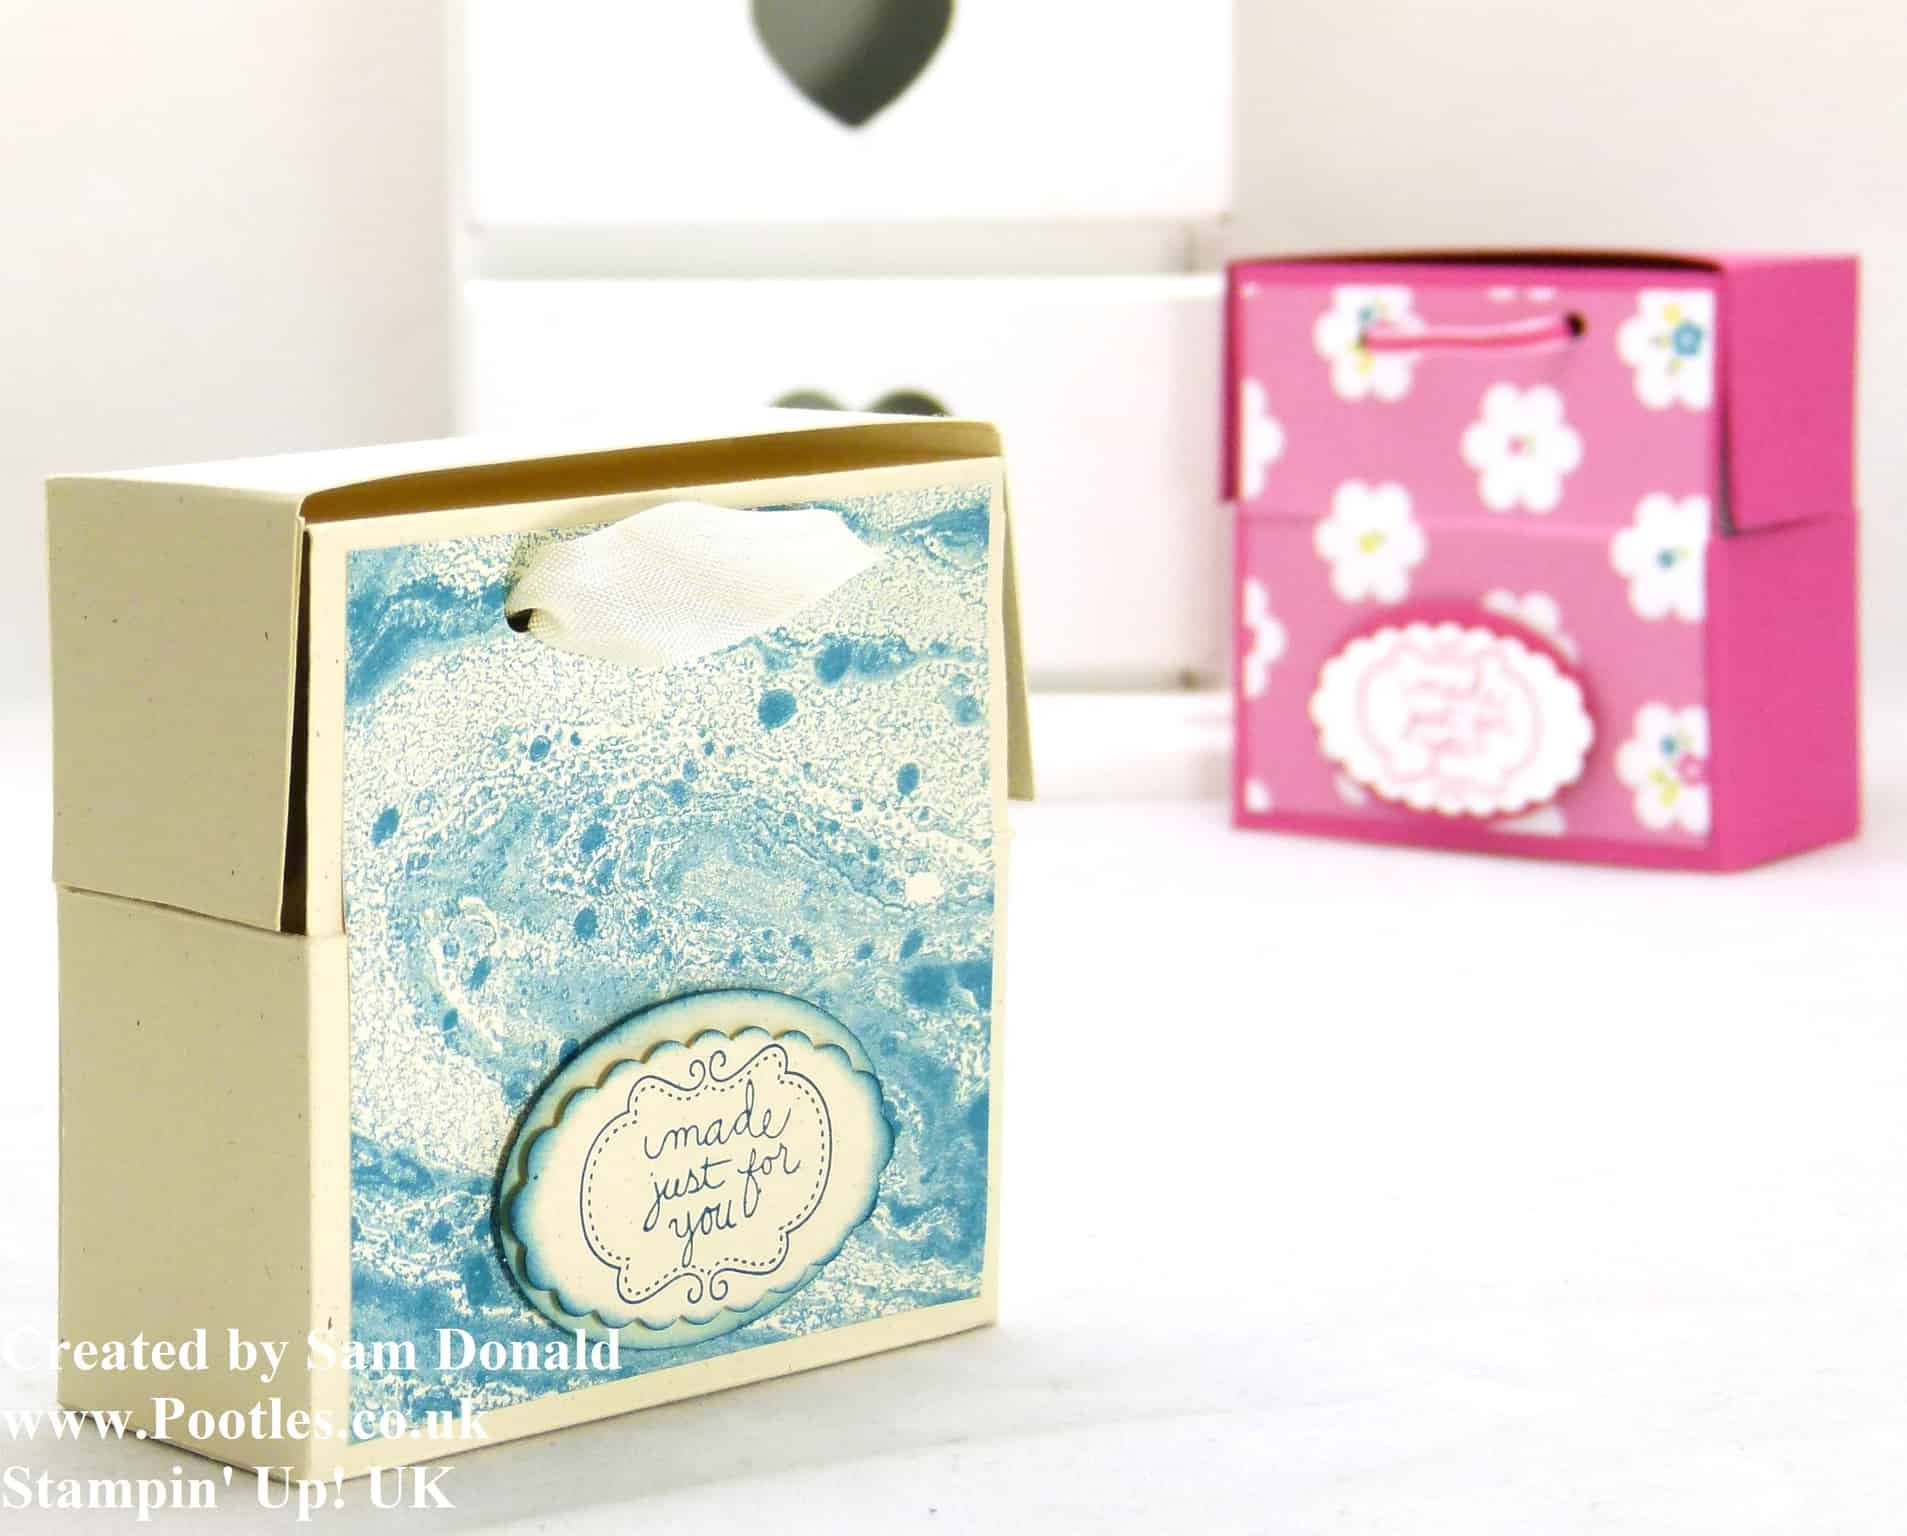 Pootles Stampin Up UK Soap and Card Box Tutorial (2)